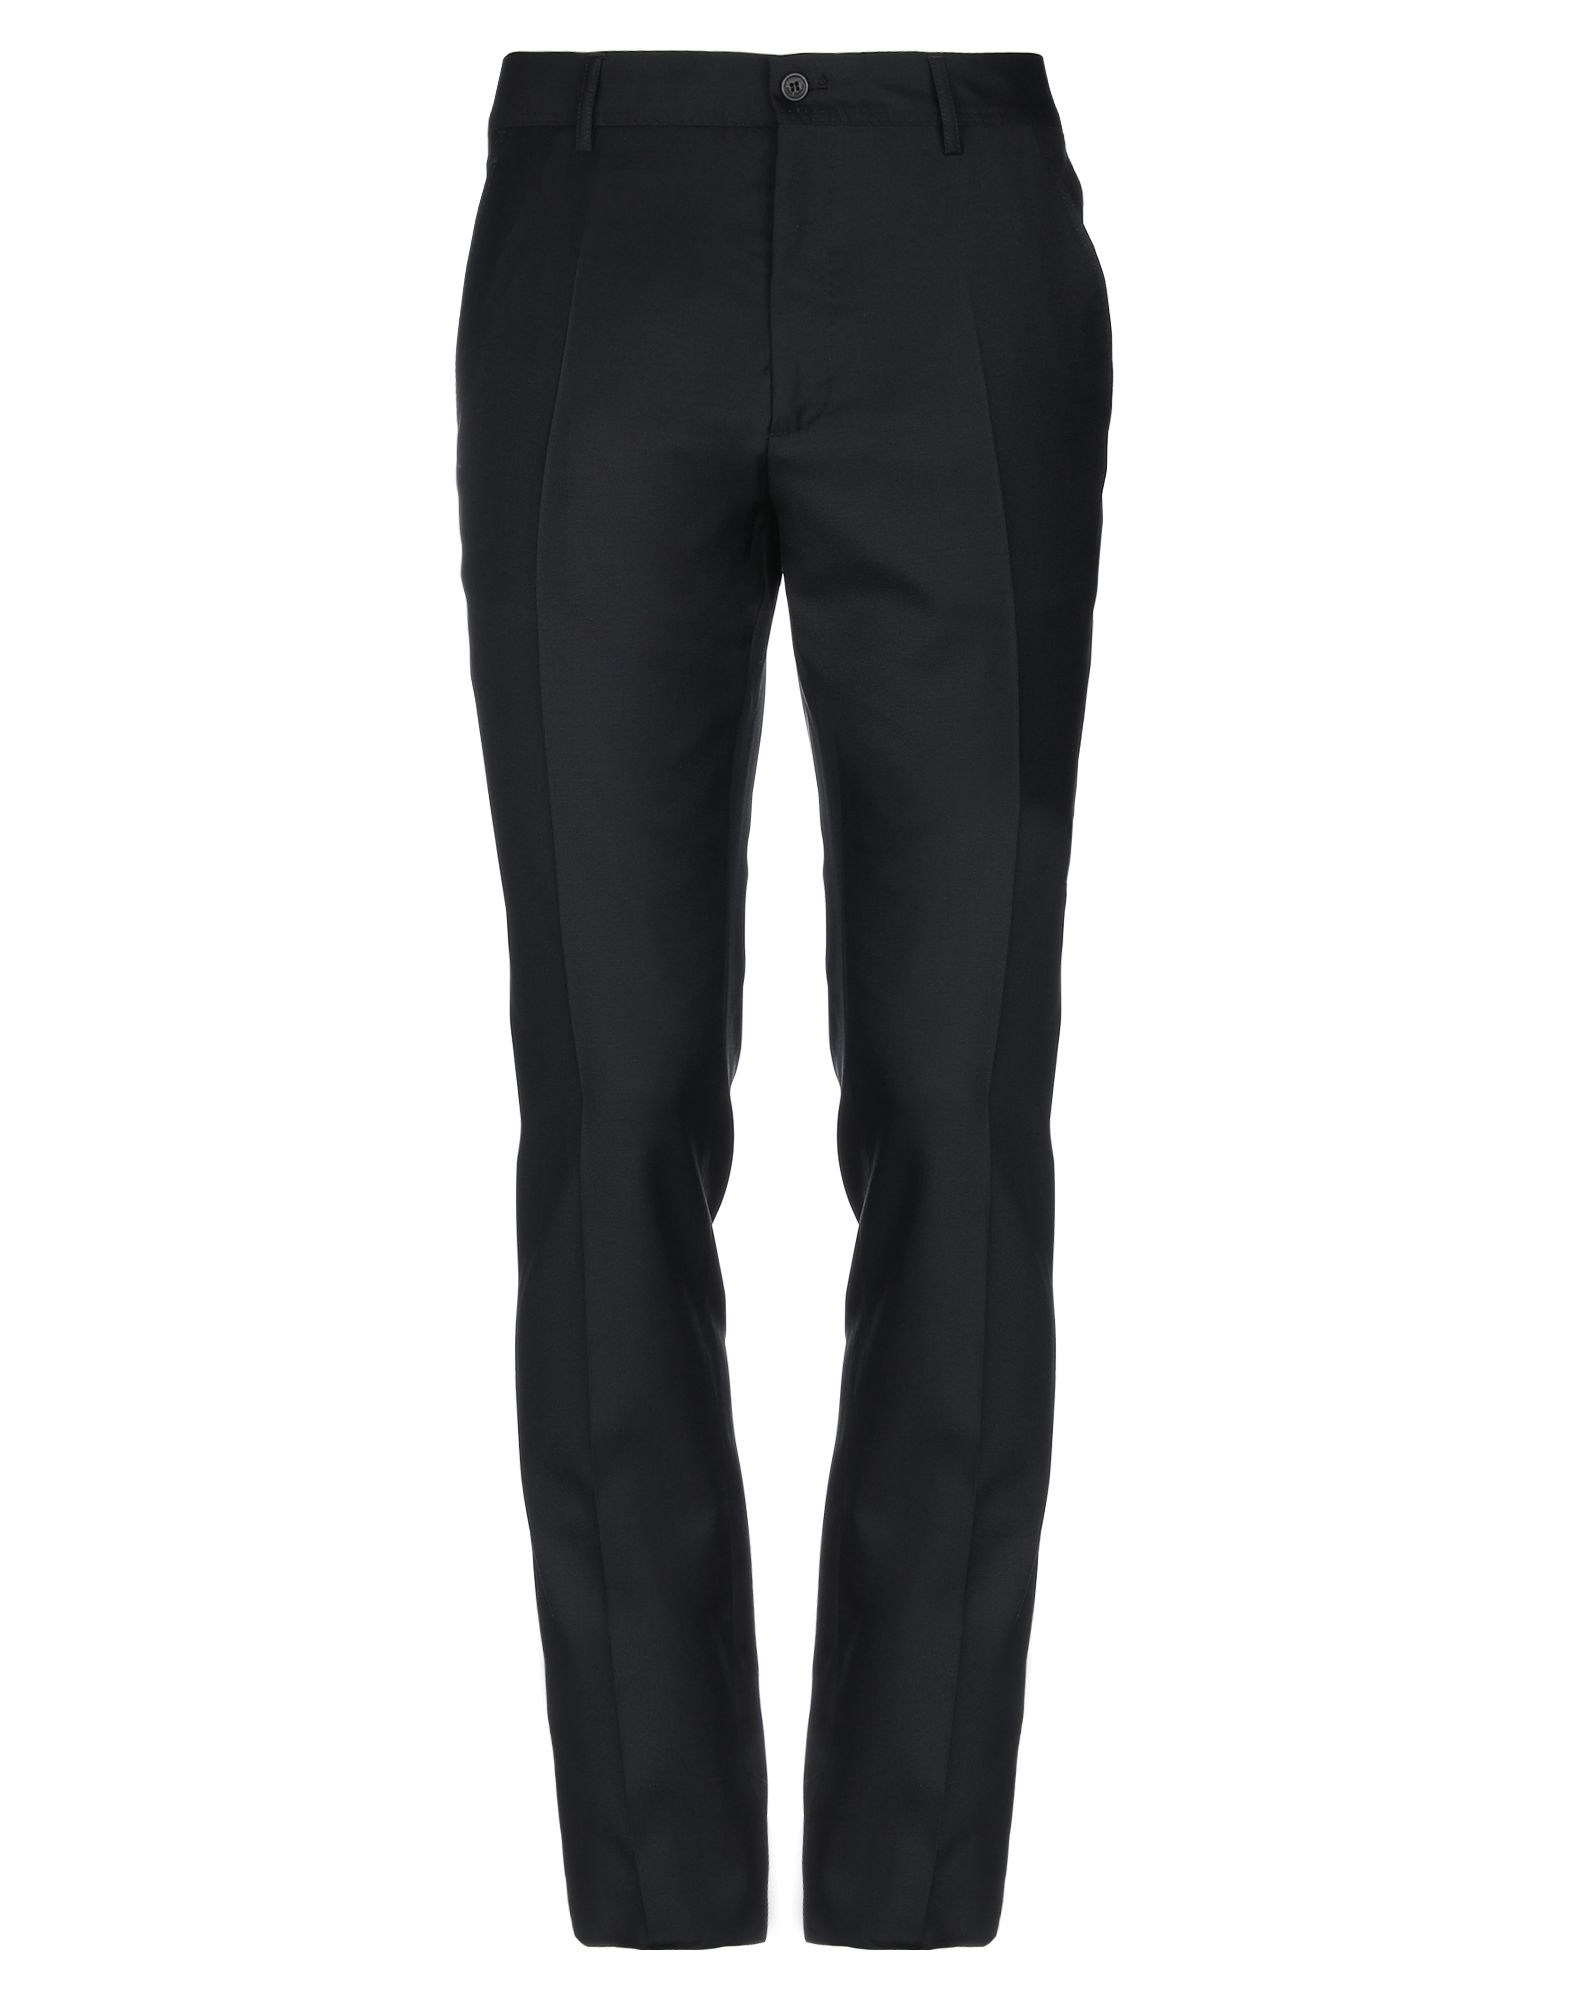 f54a7b9f4f John Galliano Men - shop online jeans, t-shirts, sneakers and more ...